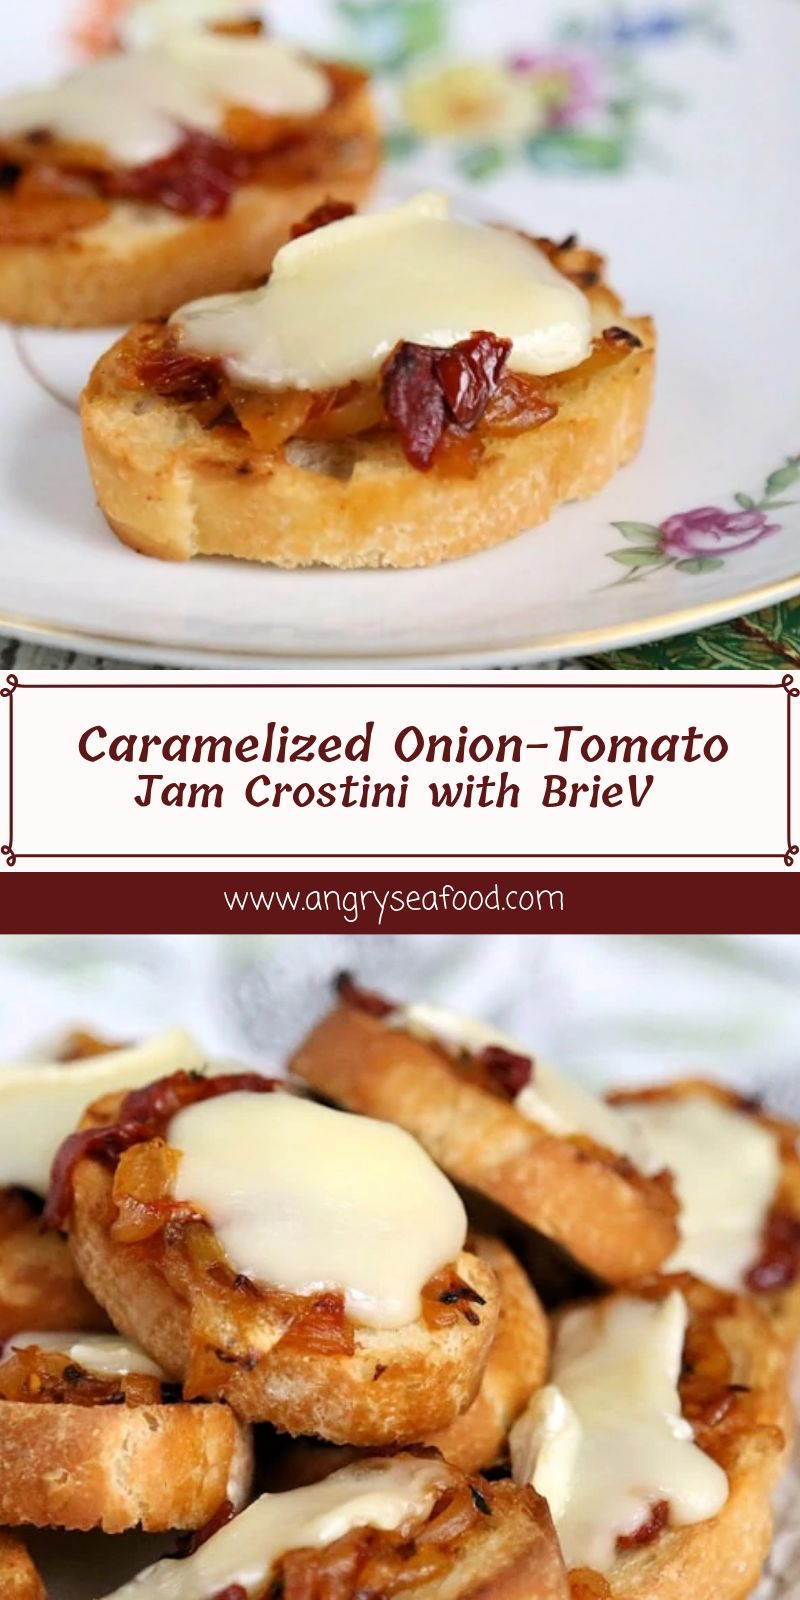 Caramelized Onion-Tomato Jam Crostini with Brie